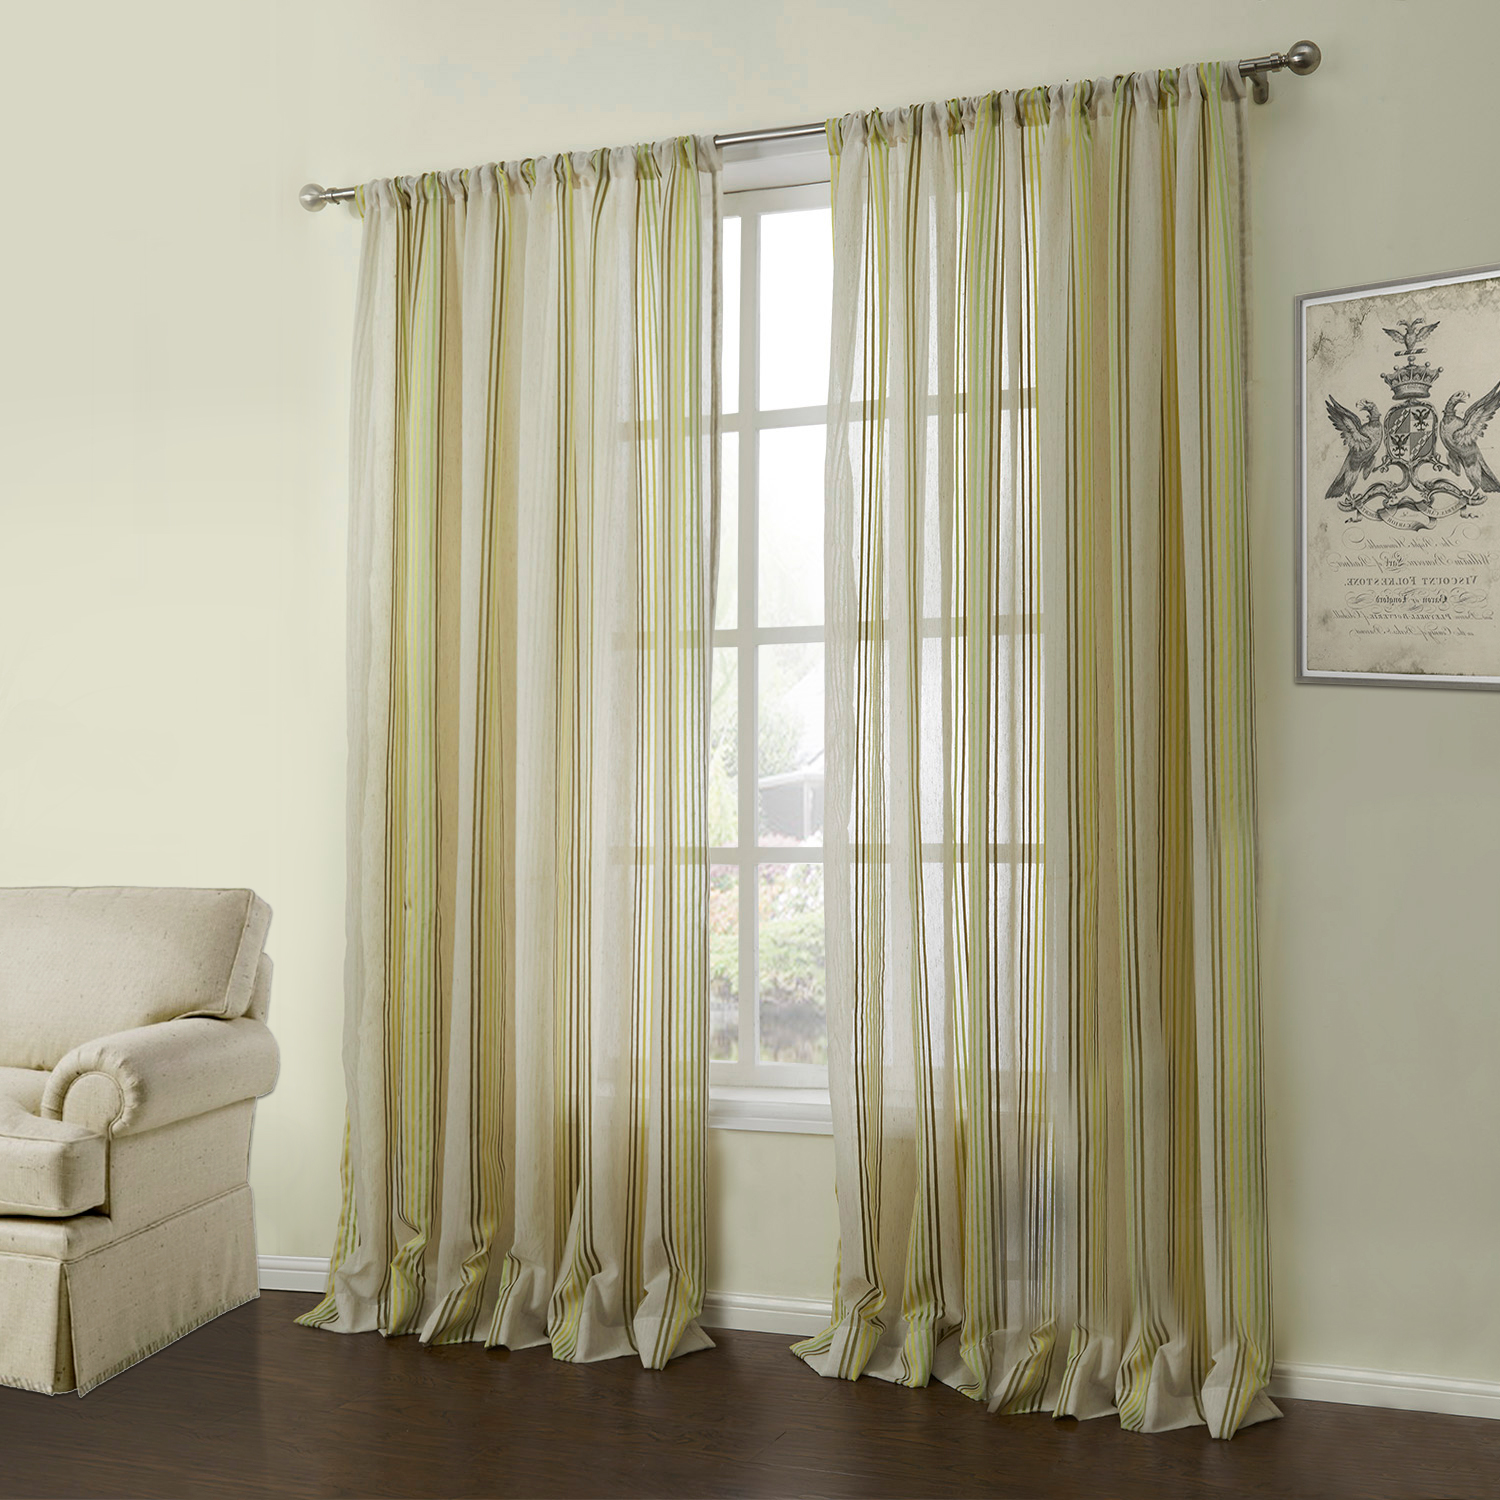 Curtains   Sheer Curtains   ( One Panel ) Modern Jacquard Yellow U0026 Green  Stripe Pattern Linen Sheer Curtains 05